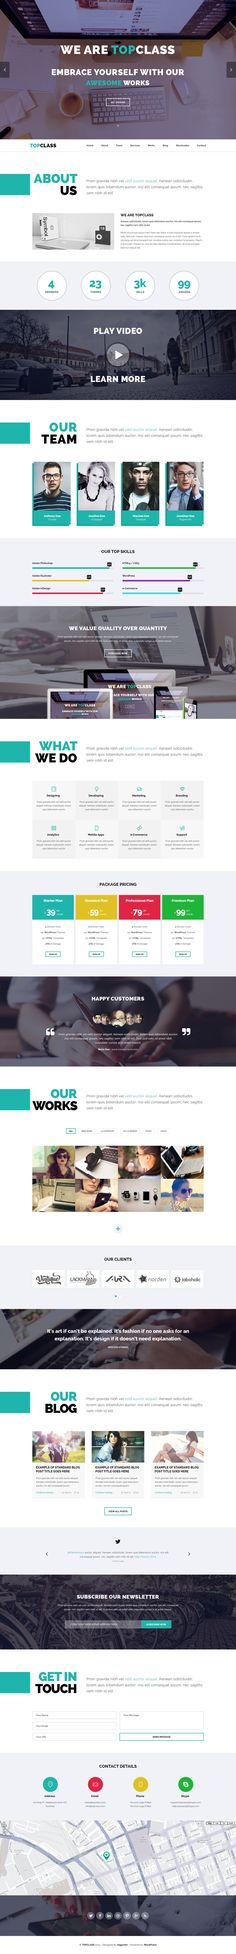 Layout and ideas are on point but the colors are wrecking the picture. #colorblind #webdesign